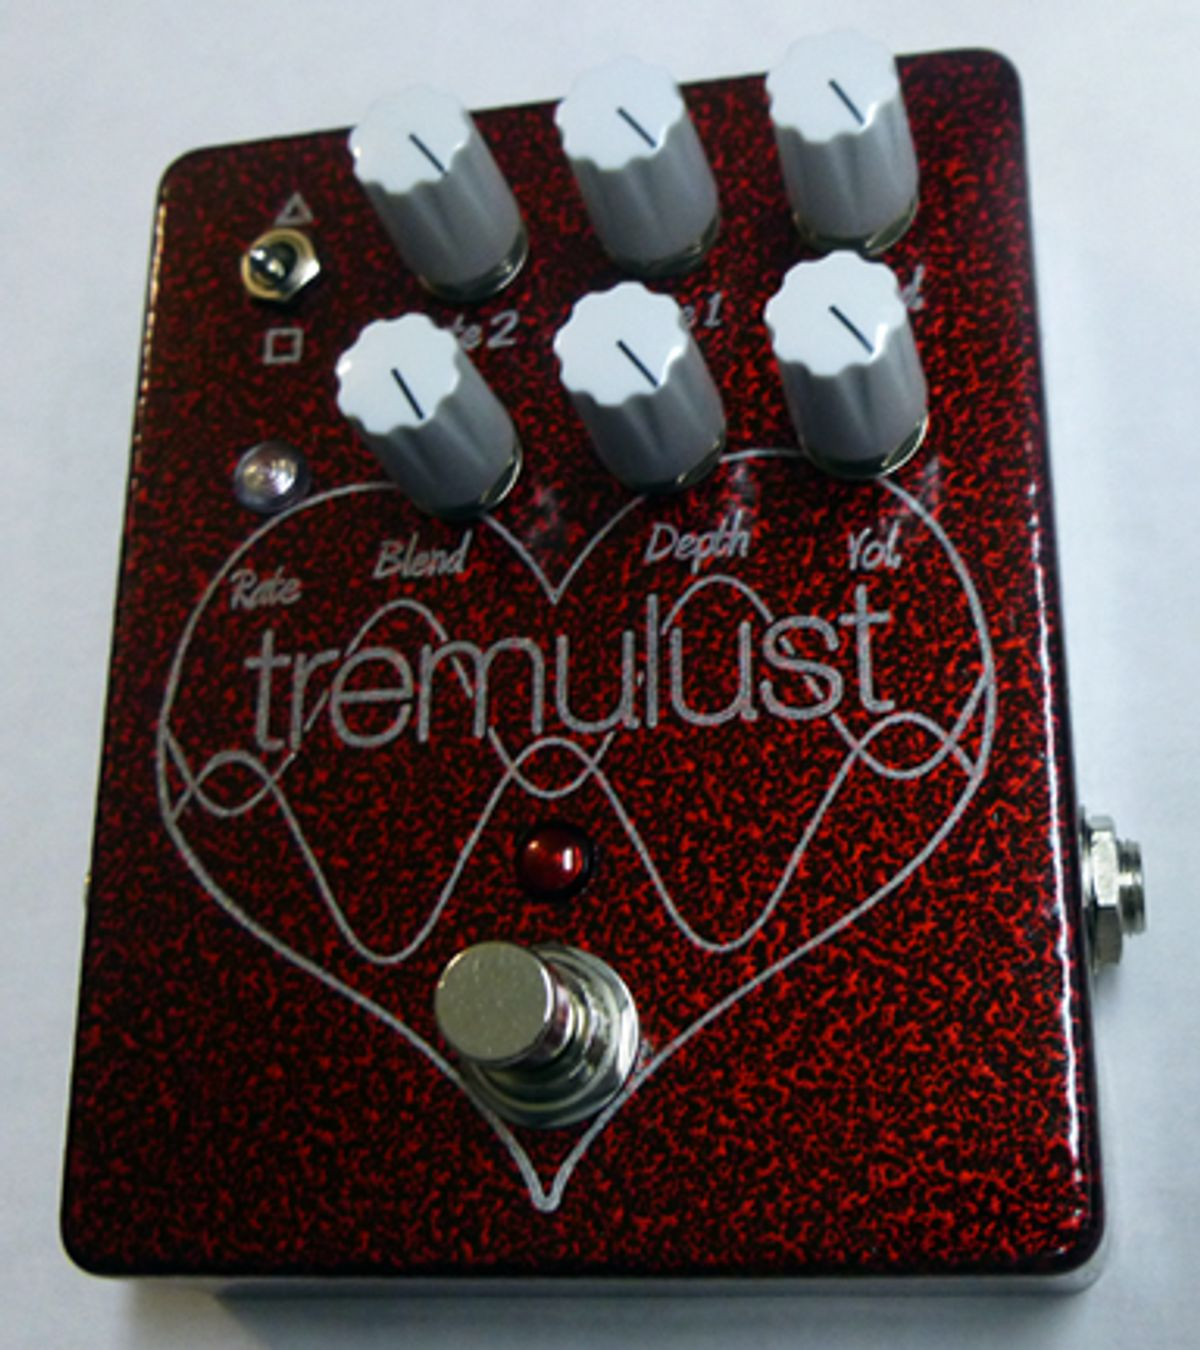 FuzzHugger Effects Releases the Tremulust